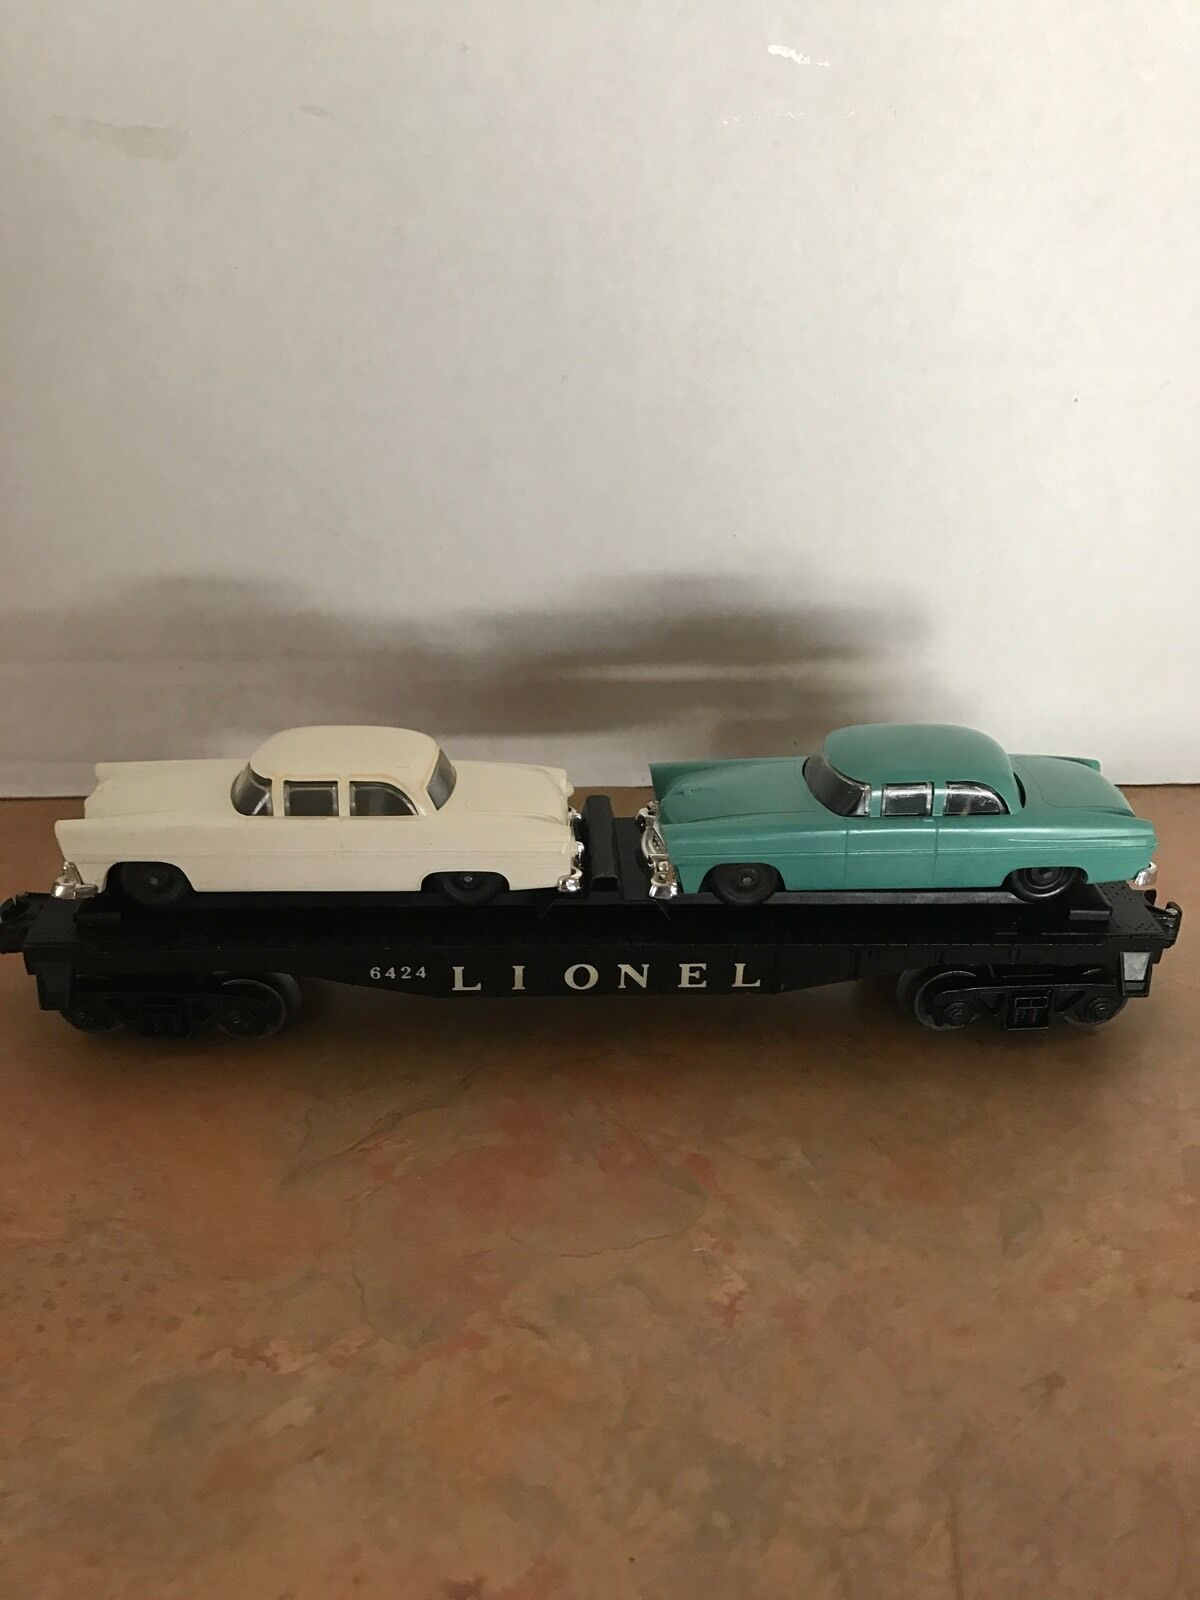 LIONEL POSTWAR 6424 TWIN AUTO FLAT CAR